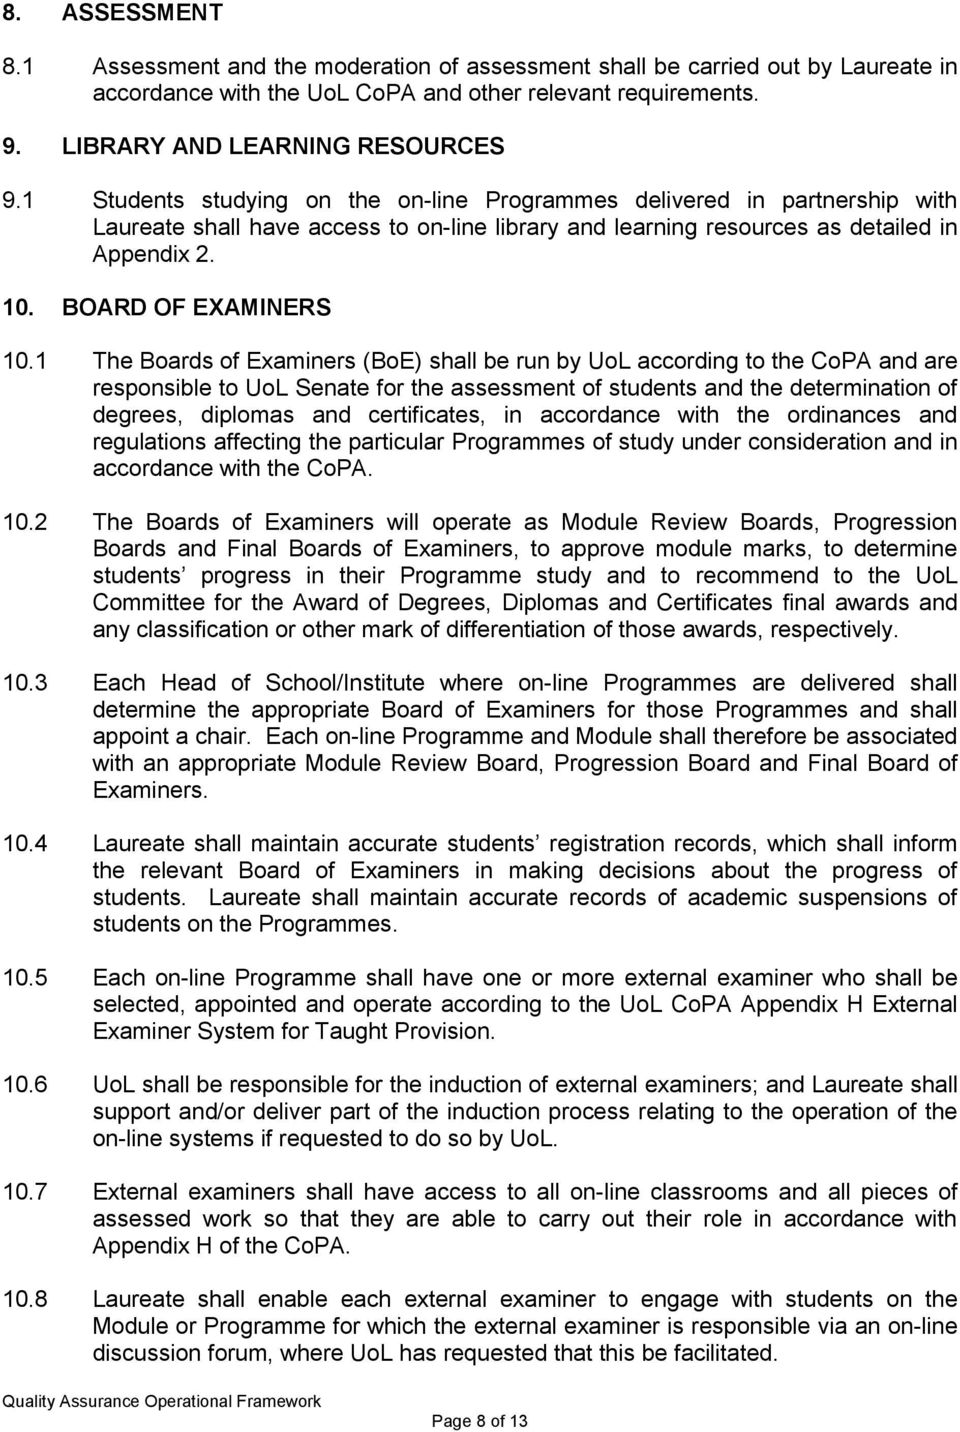 1 The Boards of Examiners (BoE) shall be run by UoL according to the CoPA and are responsible to UoL Senate for the assessment of students and the determination of degrees, diplomas and certificates,